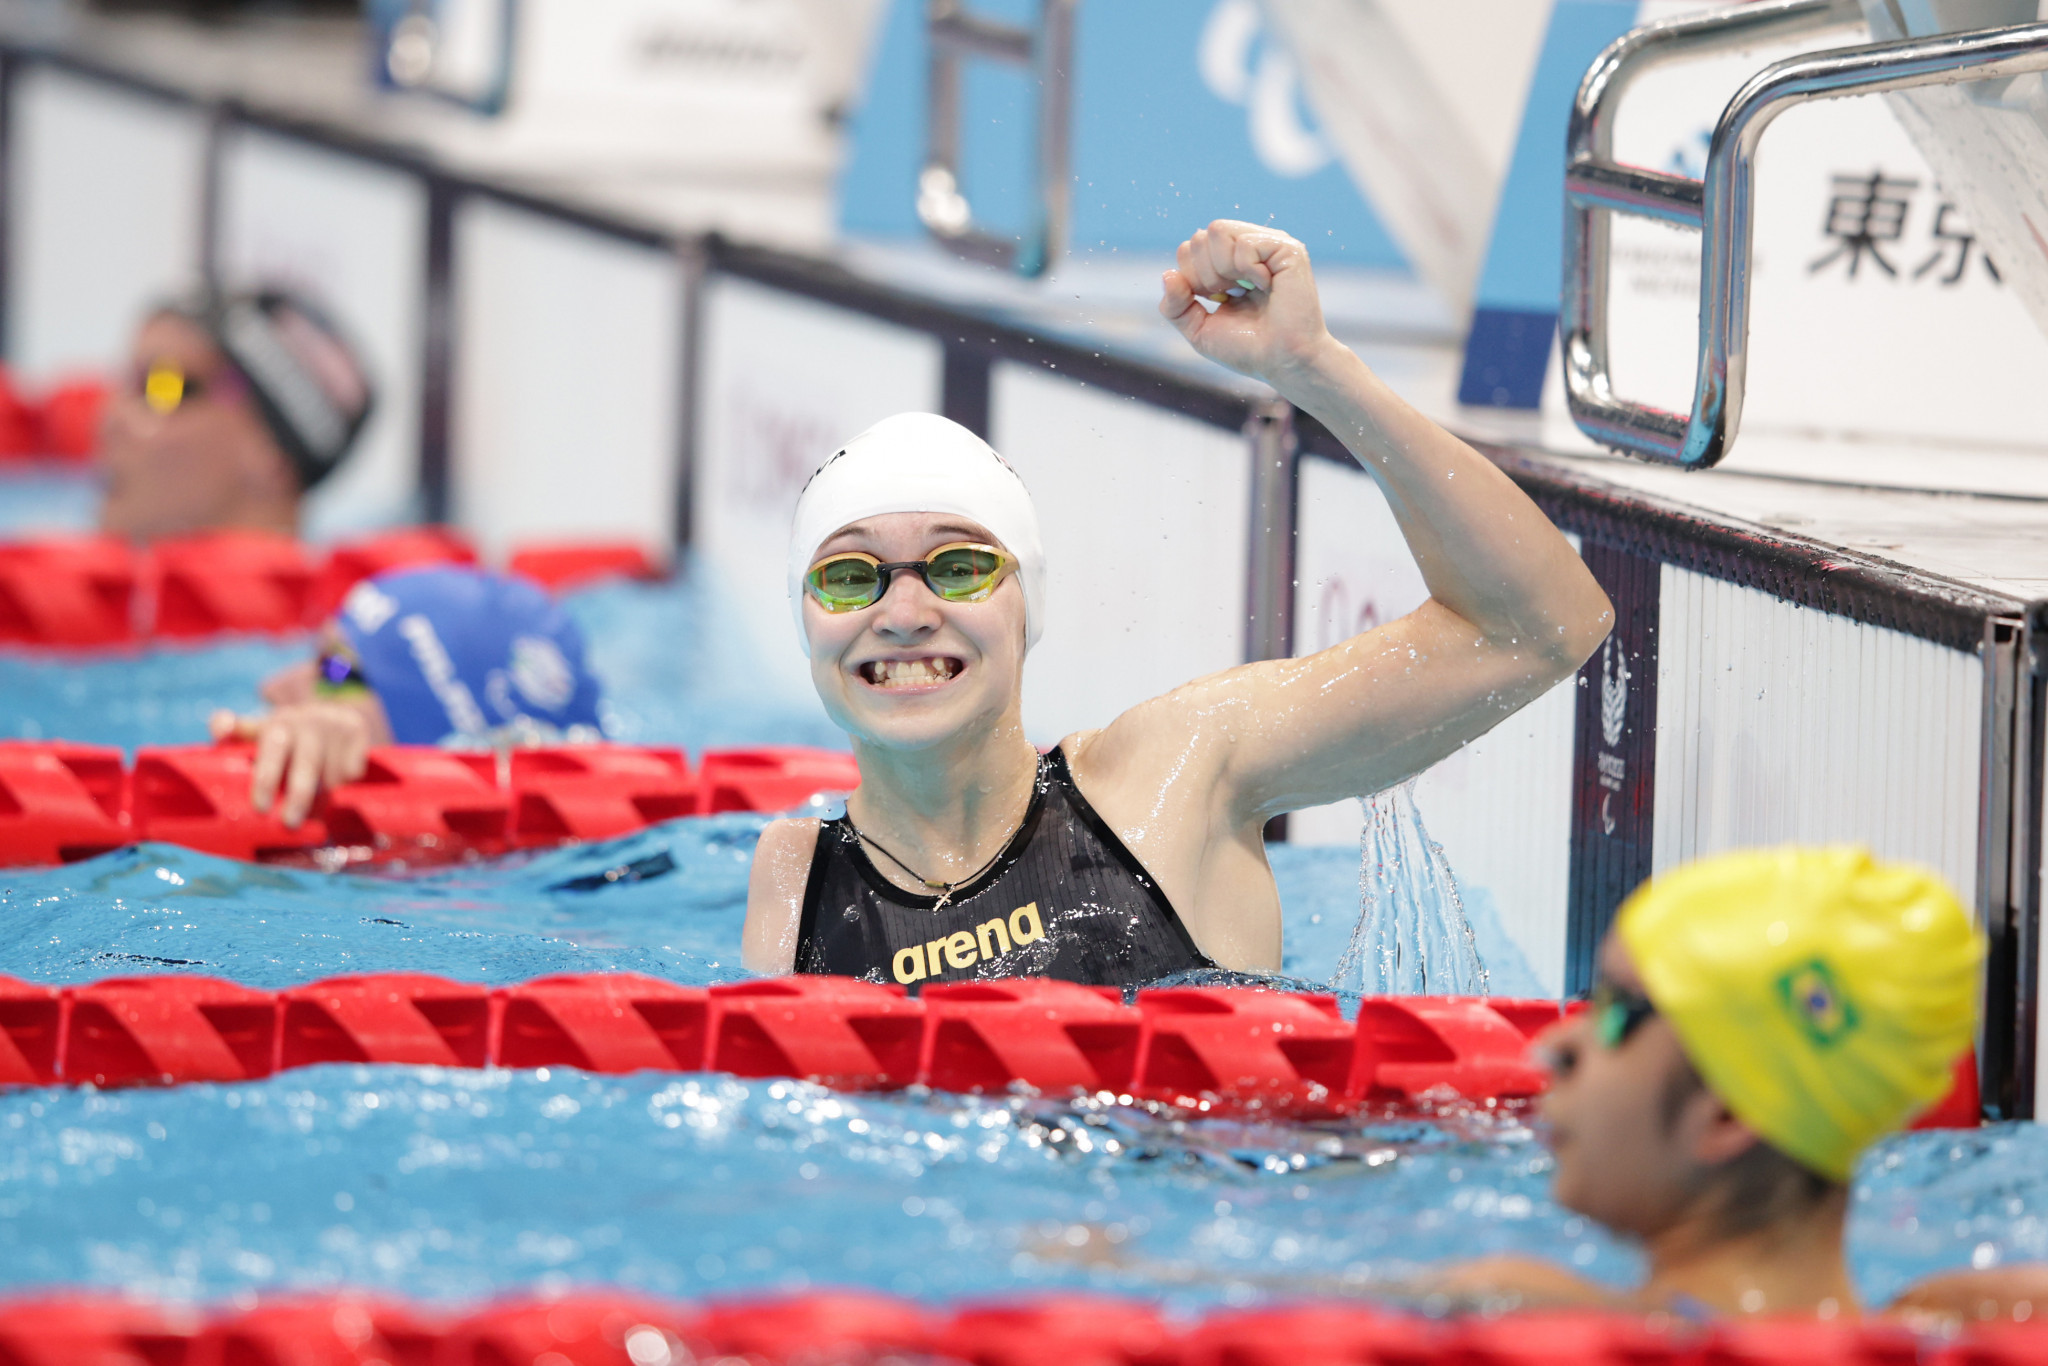 Viktoriia Ishchiulova triumphed in the women's S8 50m freestyle with a time of 29.91 seconds ©Getty Images